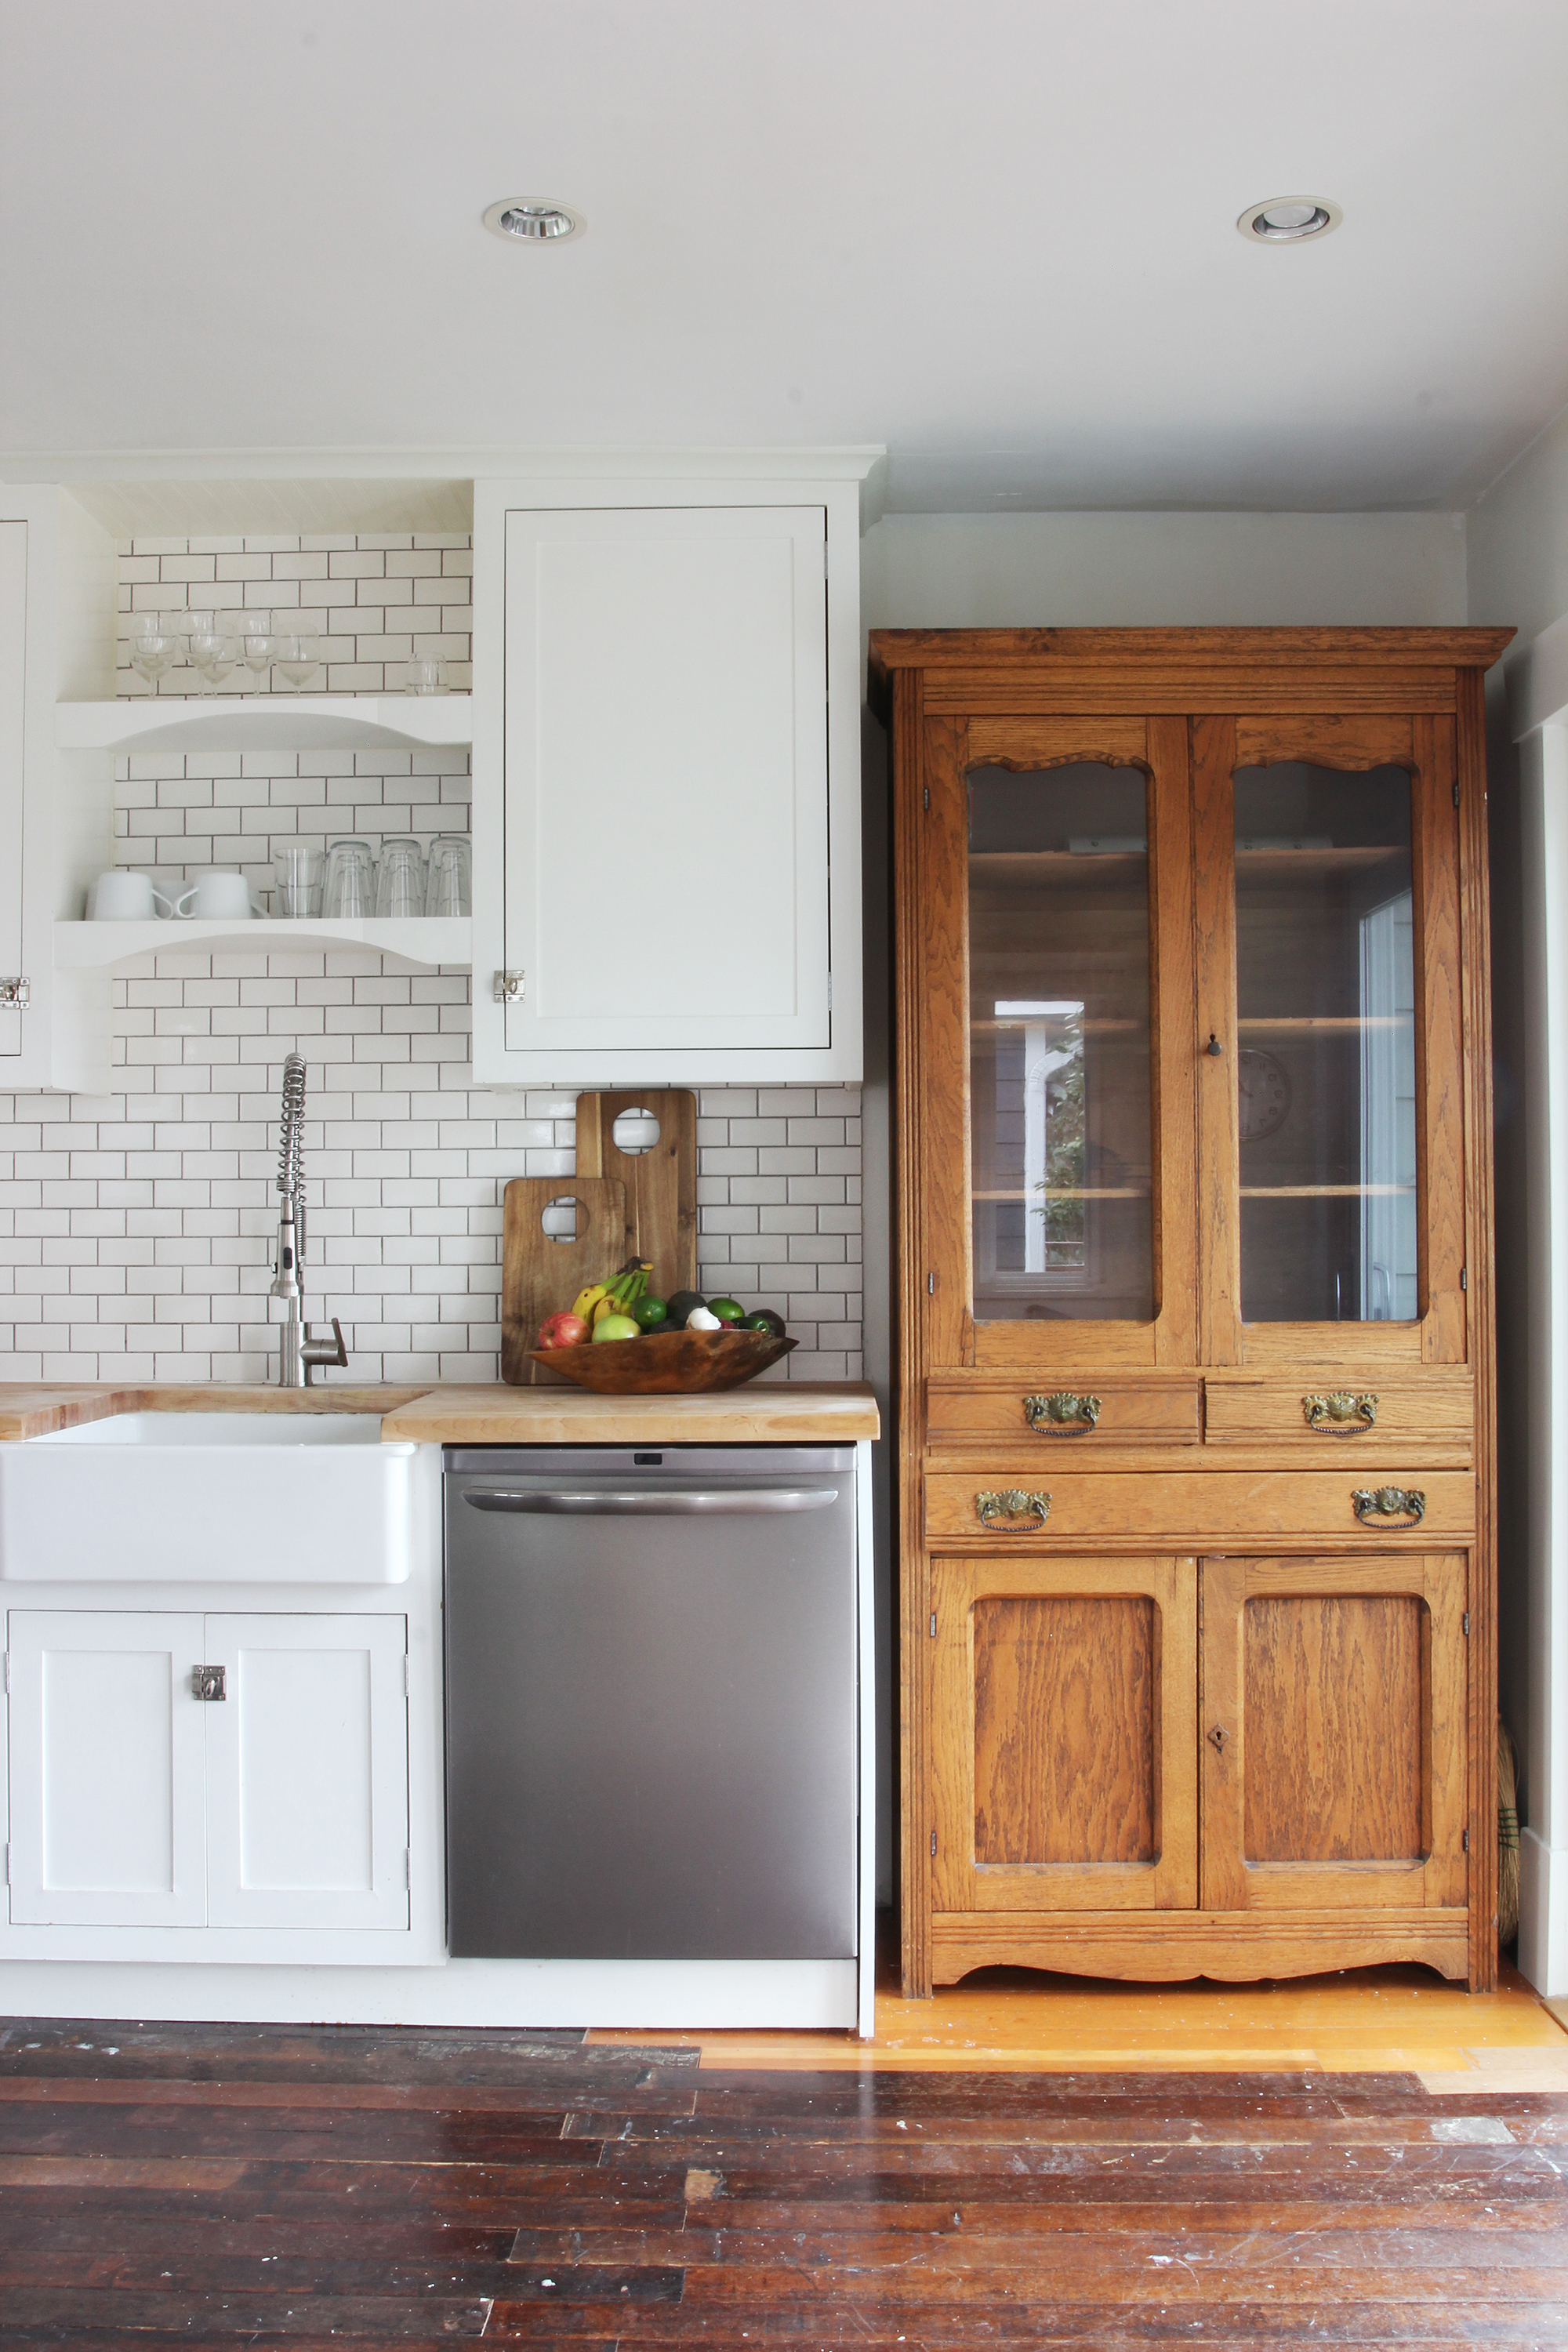 Our Favorite White Paint Color for Kitchens & Cabinets ...